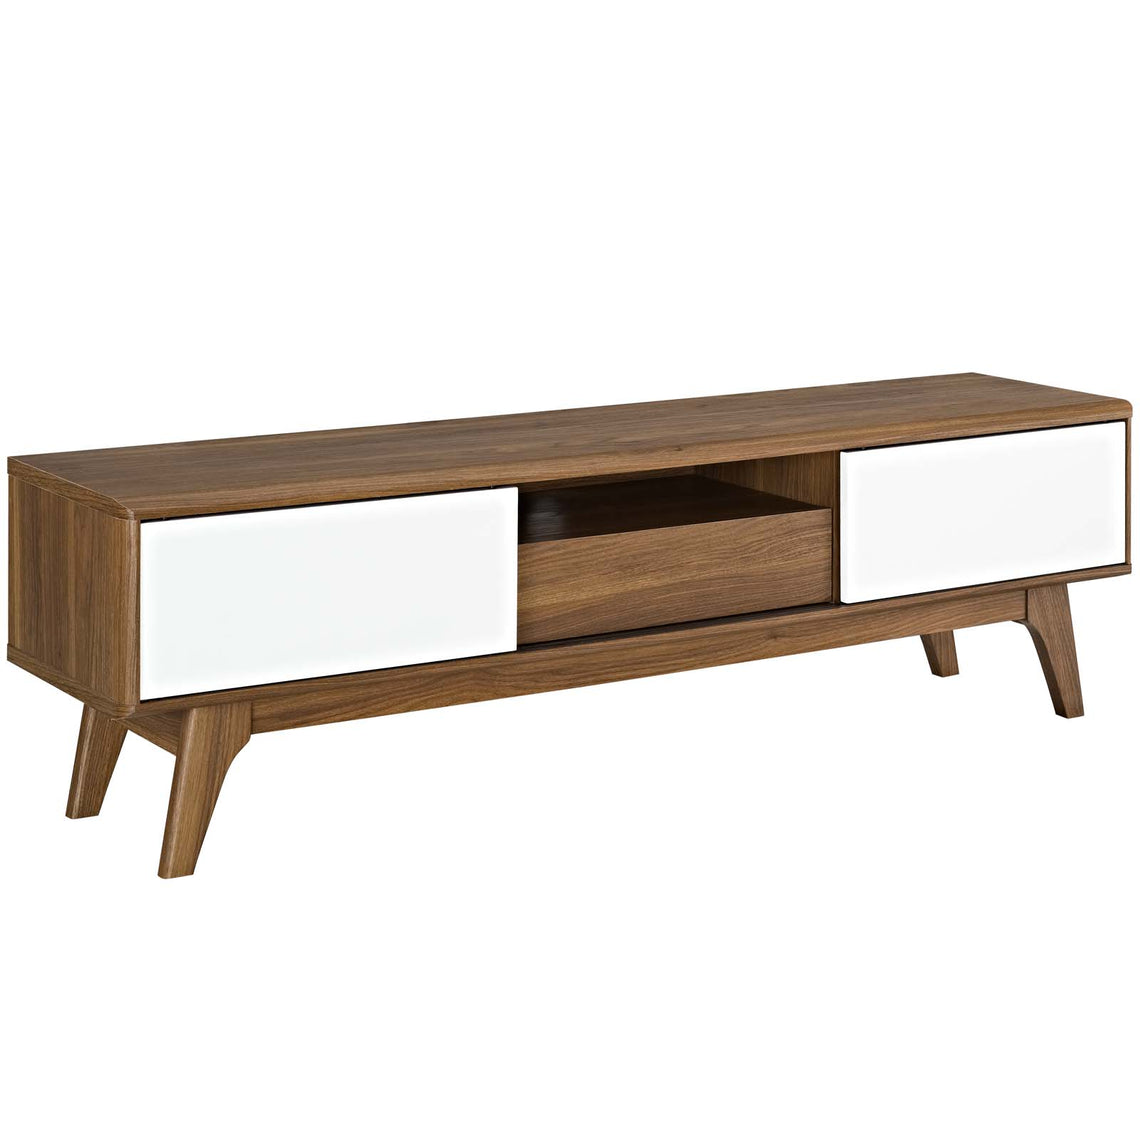 Mid - Century Modern Low Profile Media Entertainment Center Tv Console Table